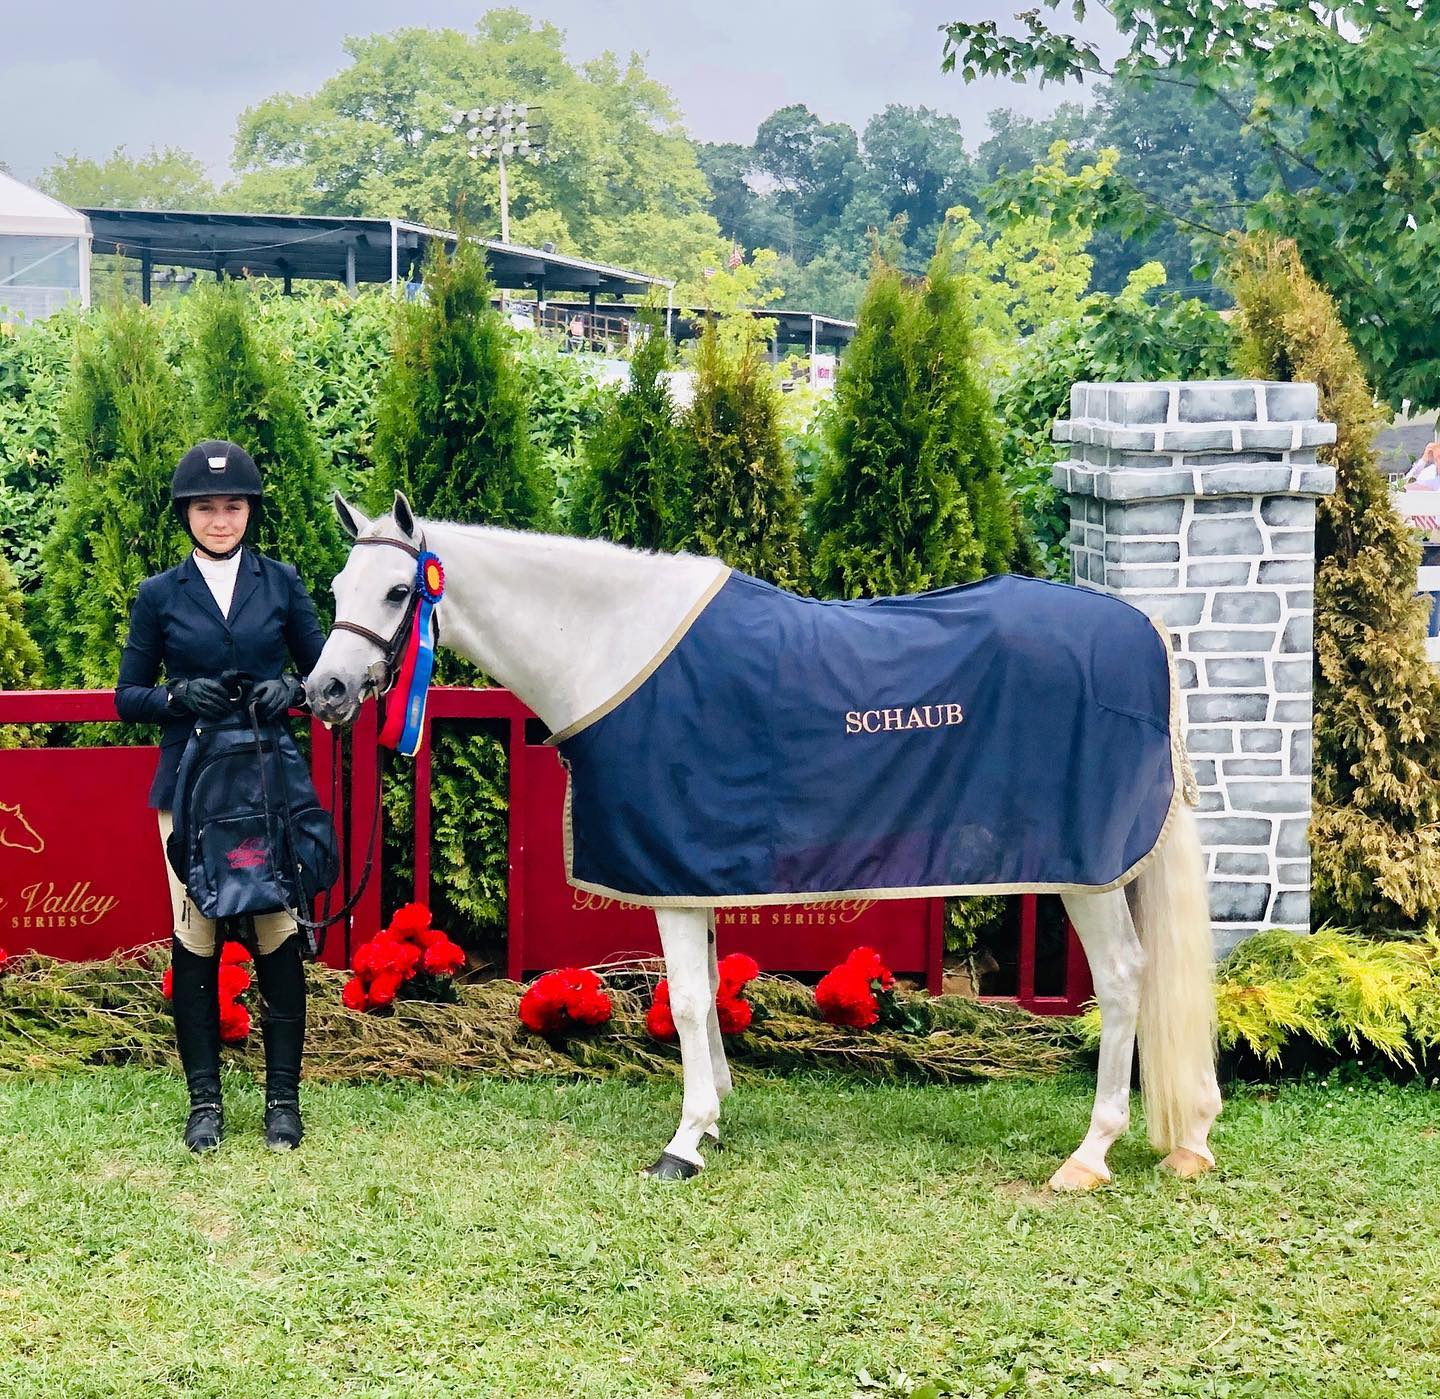 Shenandoah Coral Reef - Champion Medium Green Pony. Thank you Kierstin Antoniadis for the great rides on this young pony at Brandywine.